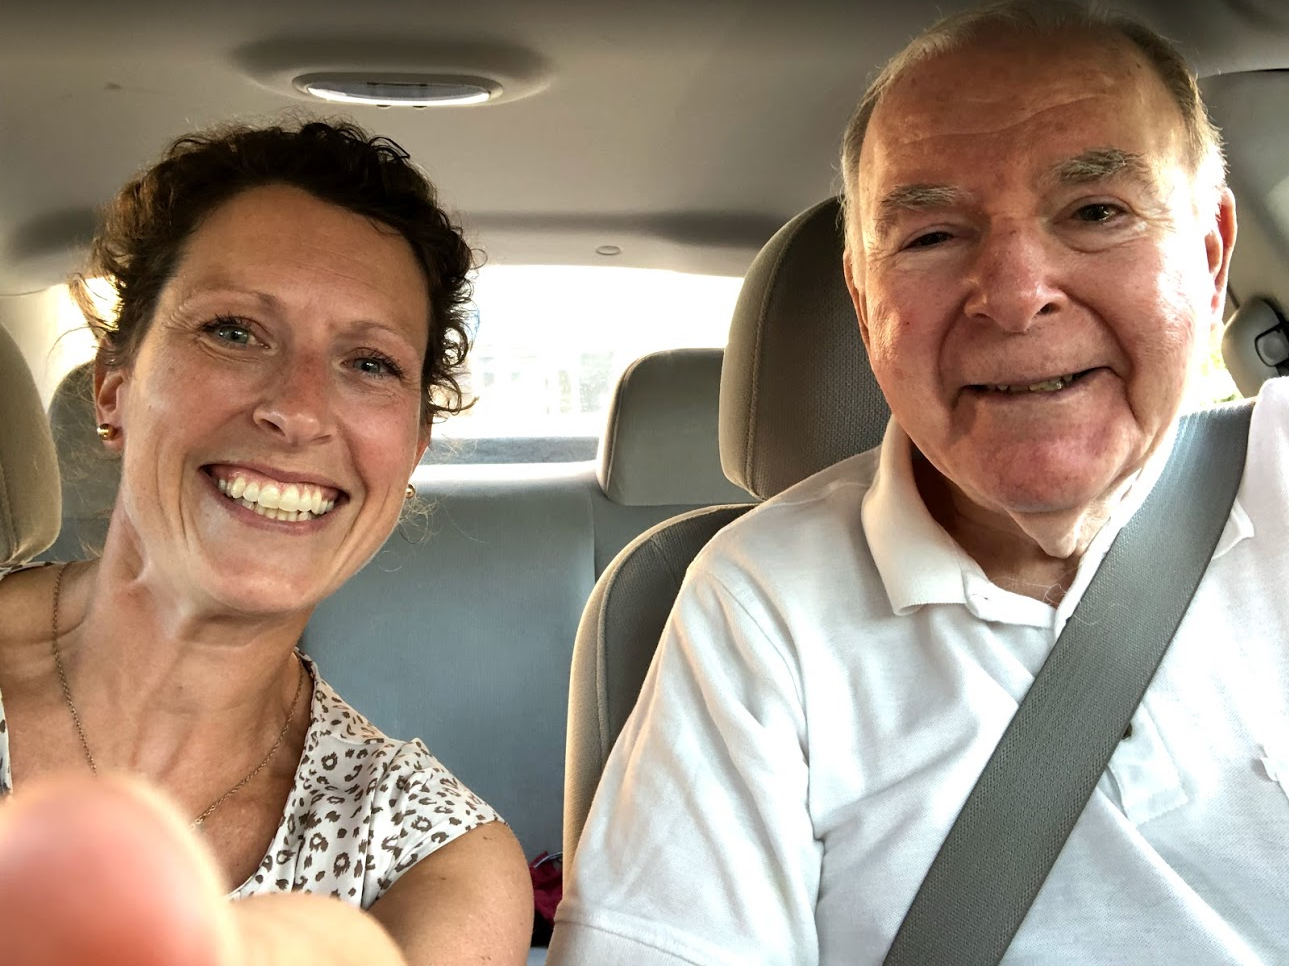 Driver excited to return to driving after recovering from his stroke.